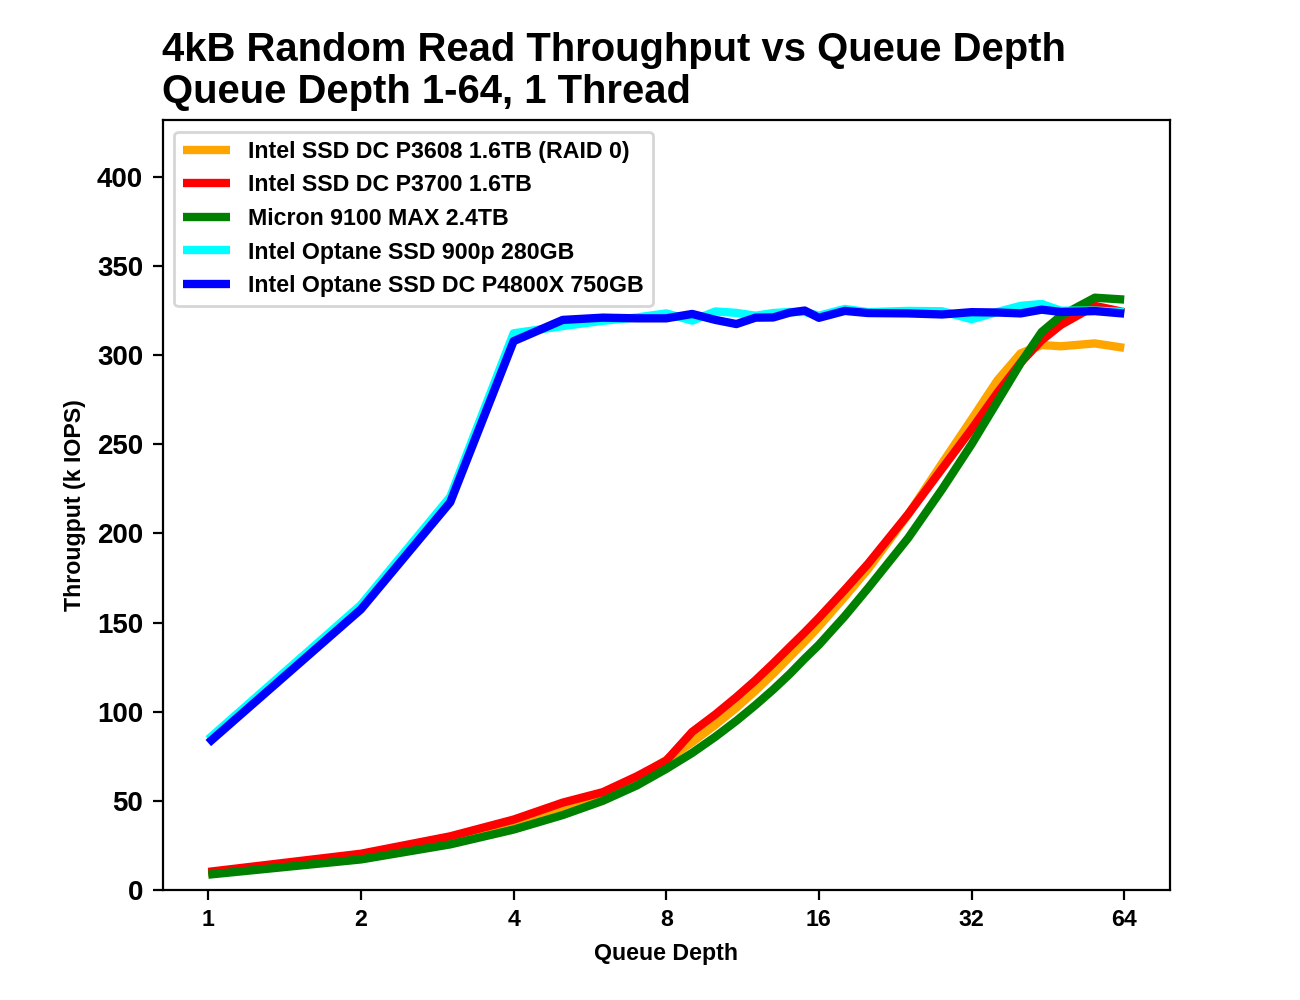 Random Read Throughput